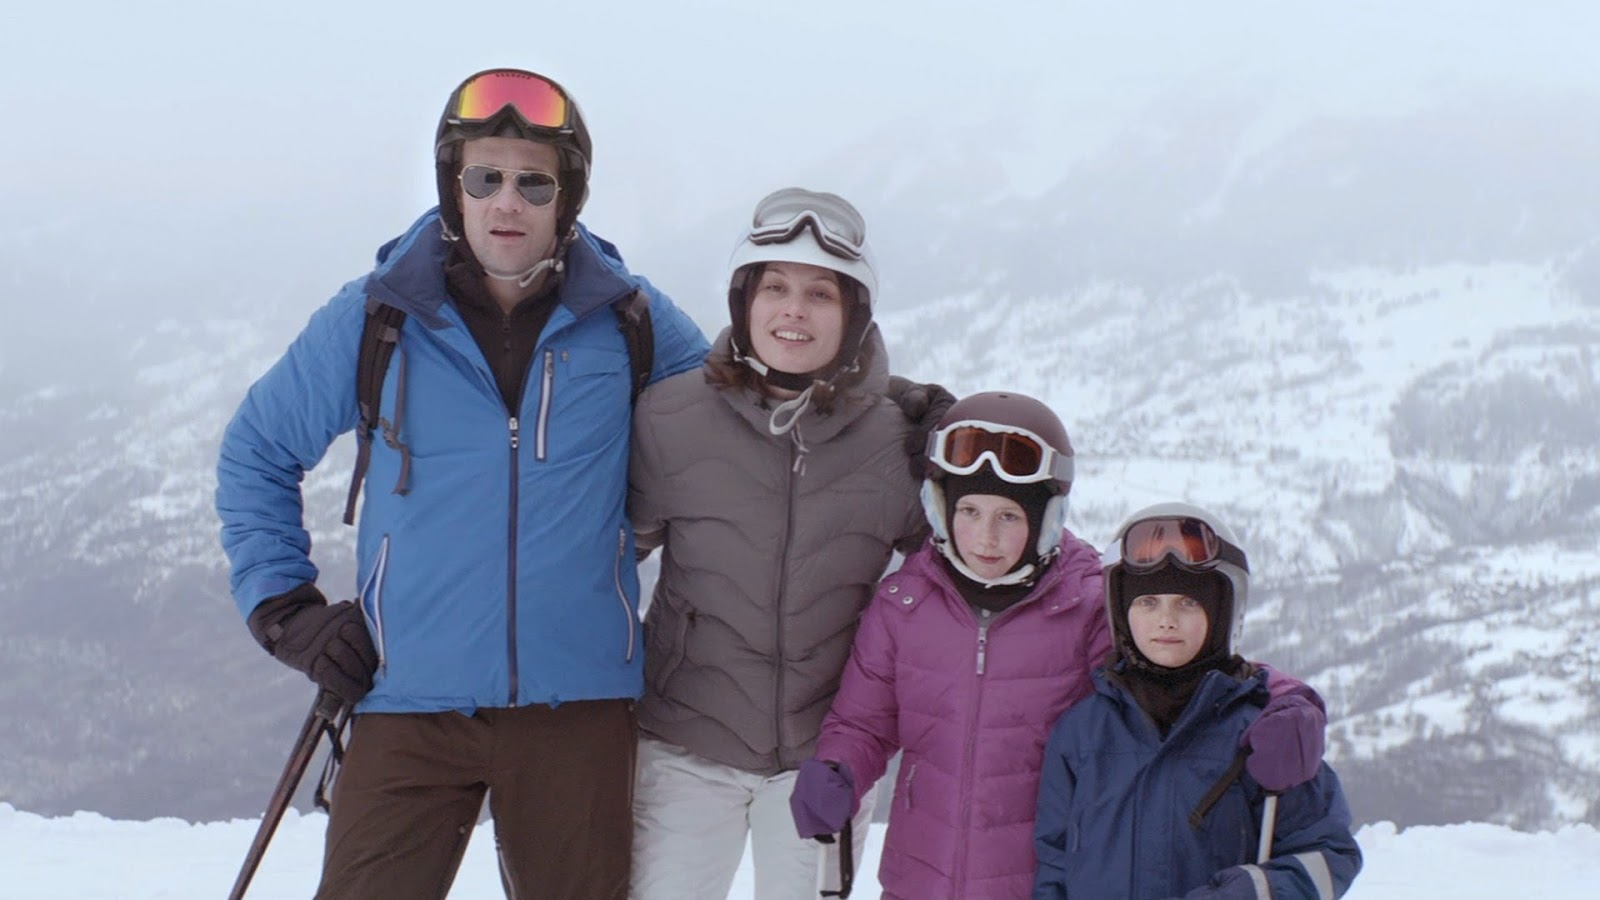 The Family in Force Majeure, Directed by Ruben Östlund